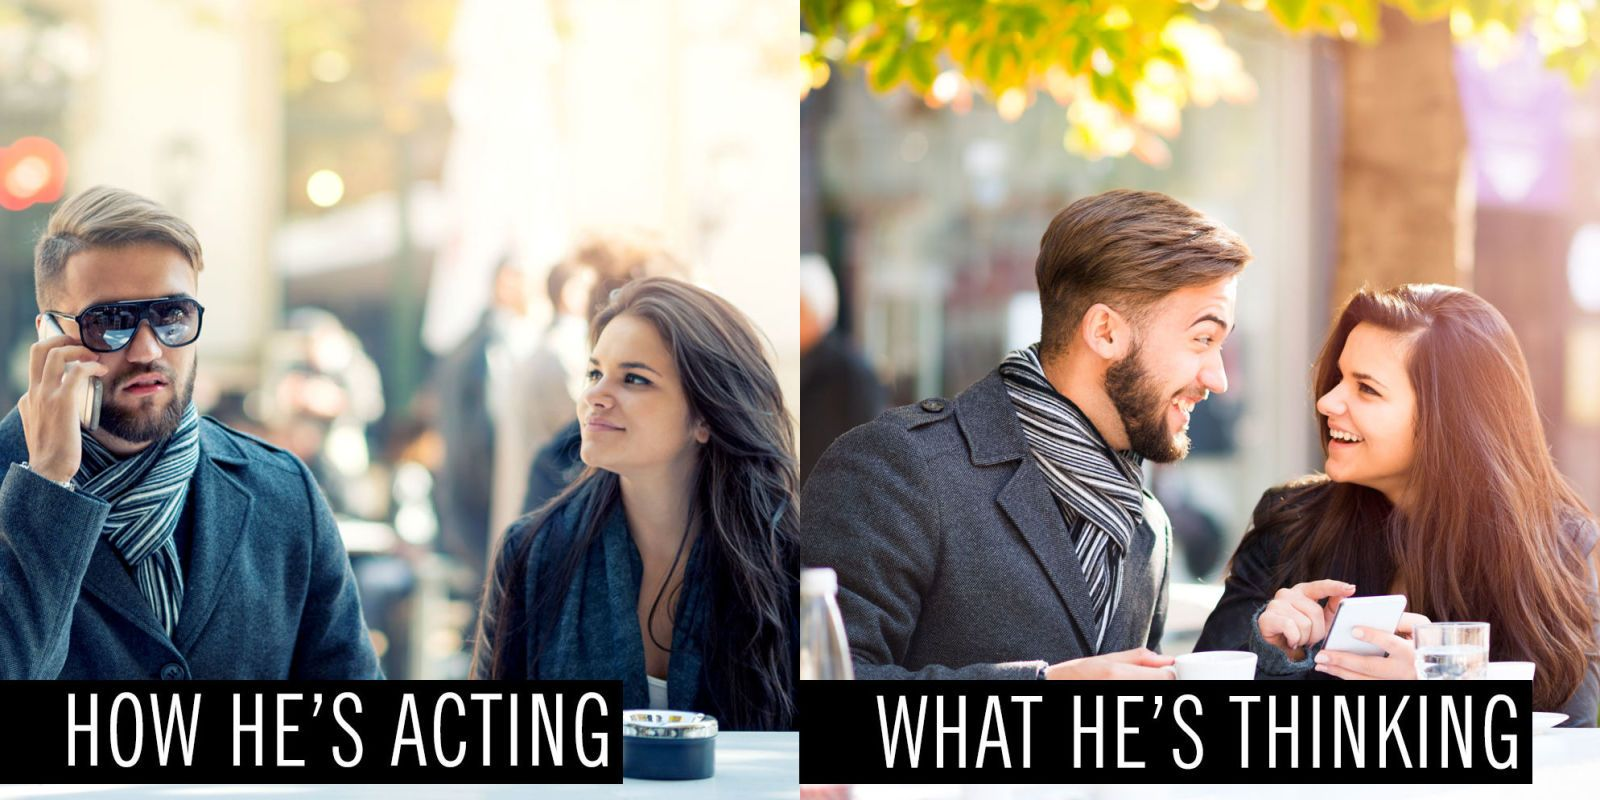 10 Things He's Dying to Ask You on a First Date but Doesn't